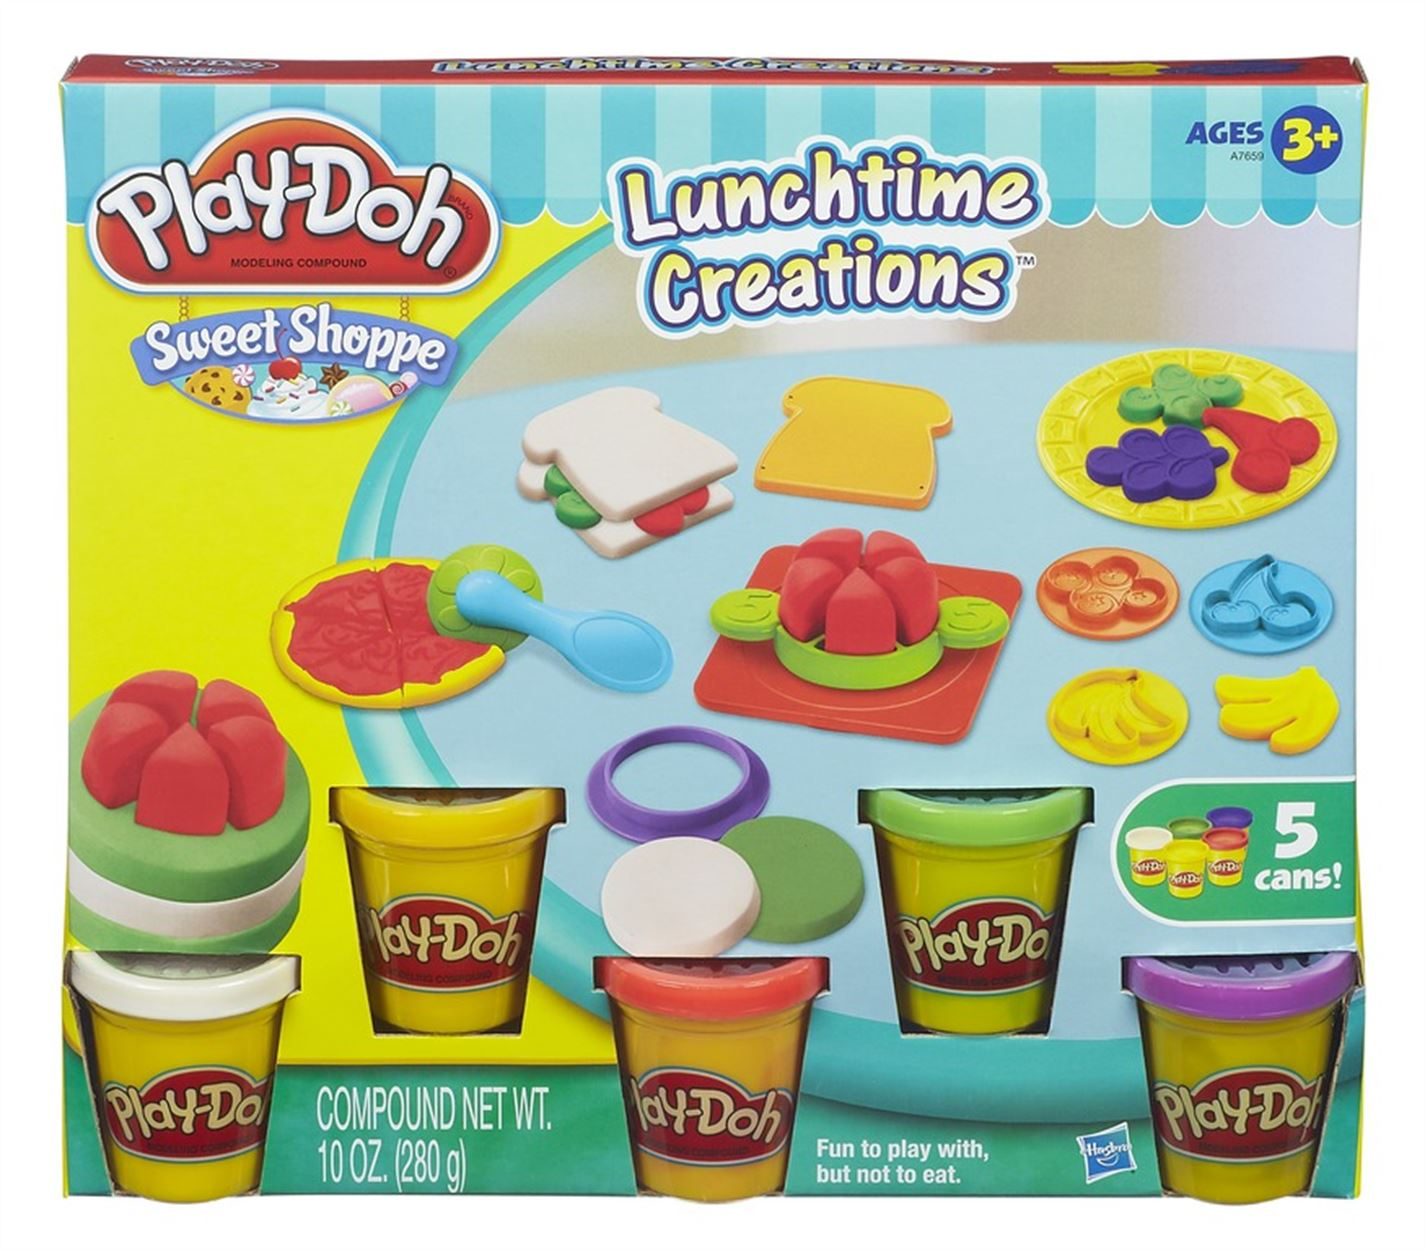 Play-Doh Play-Doh Lunchtime Creations multicolor